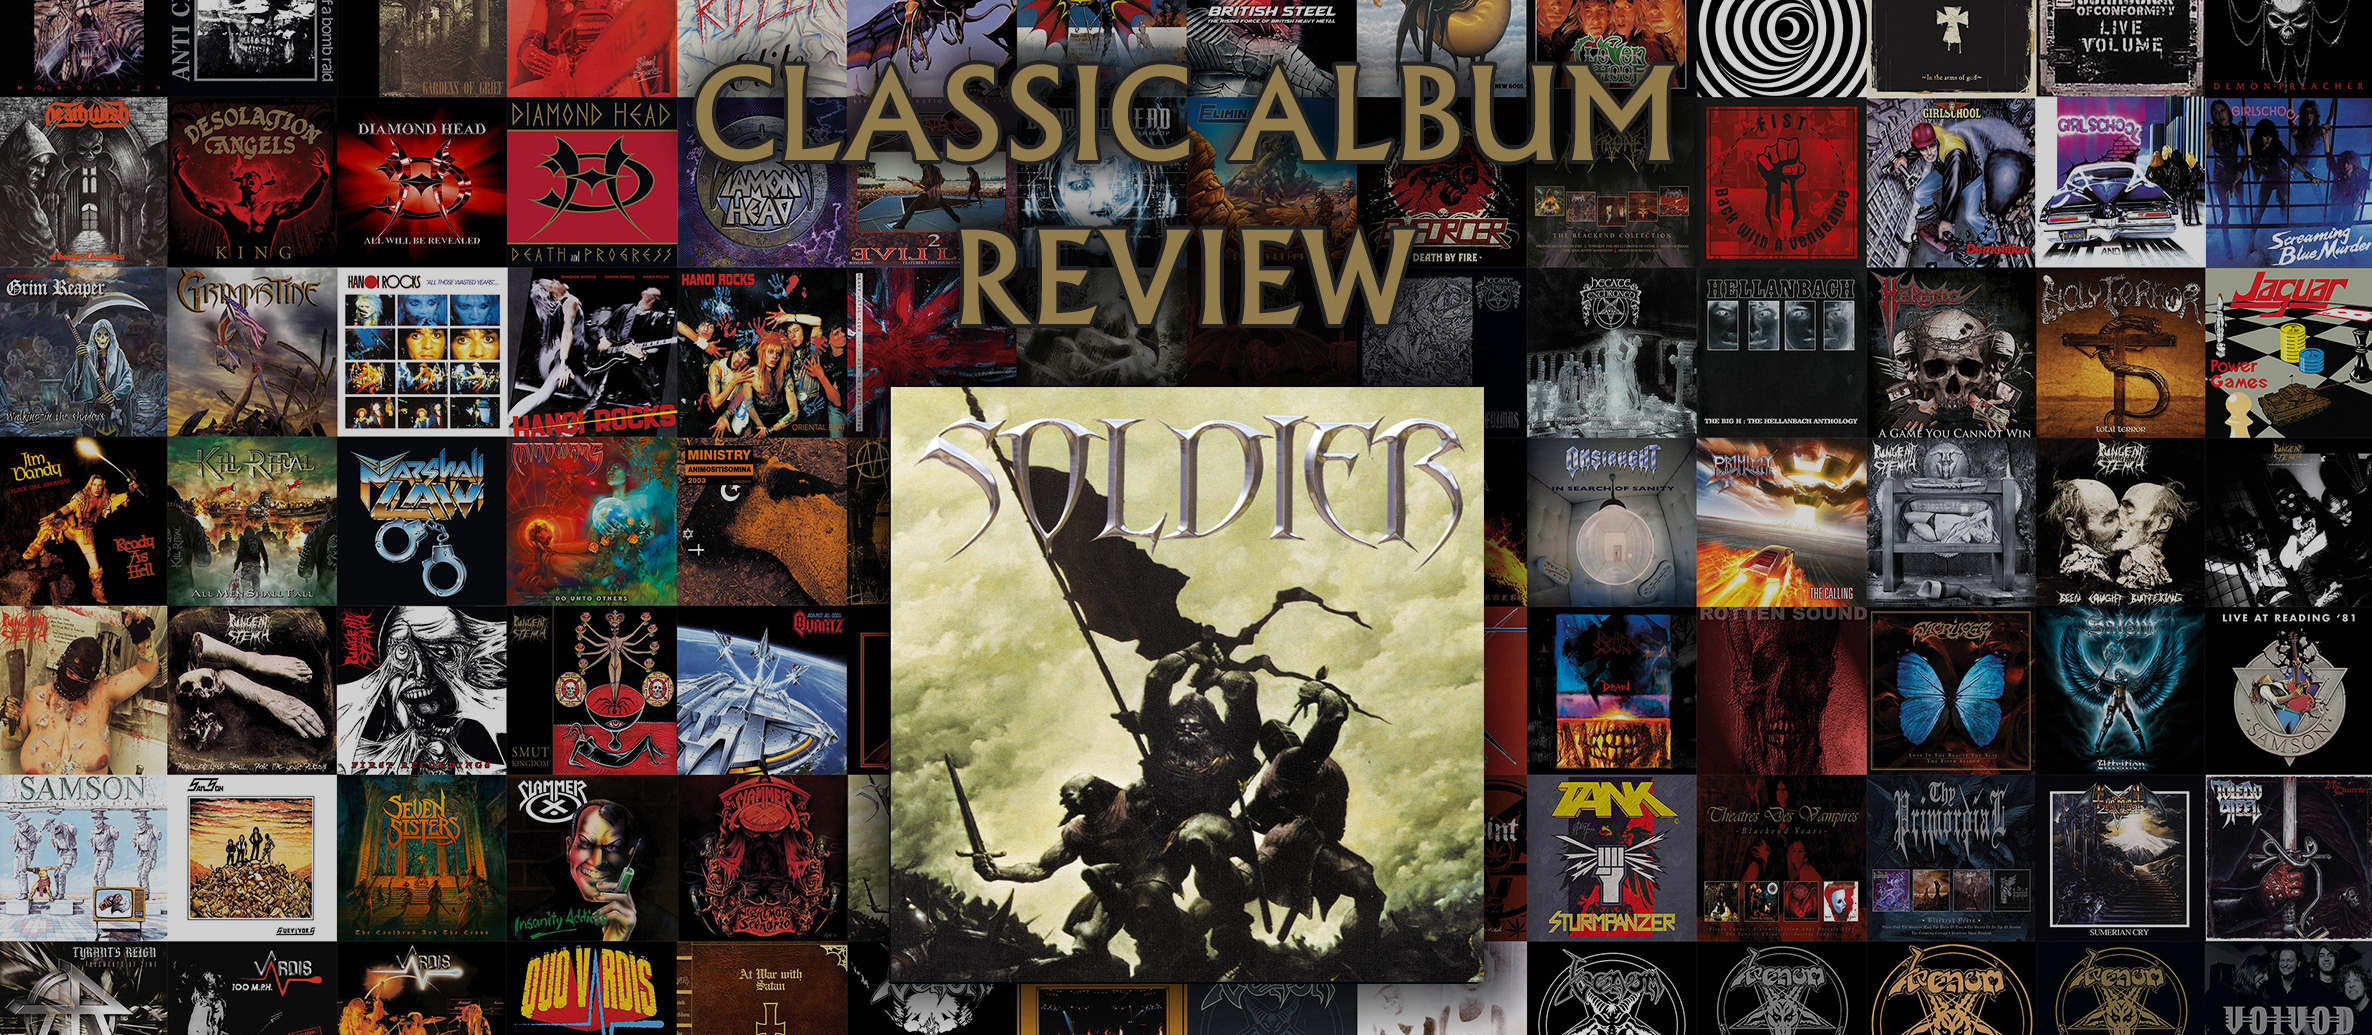 CLASSIC ALBUM REVIEW: Soldier – 'Sins Of the Warrior'